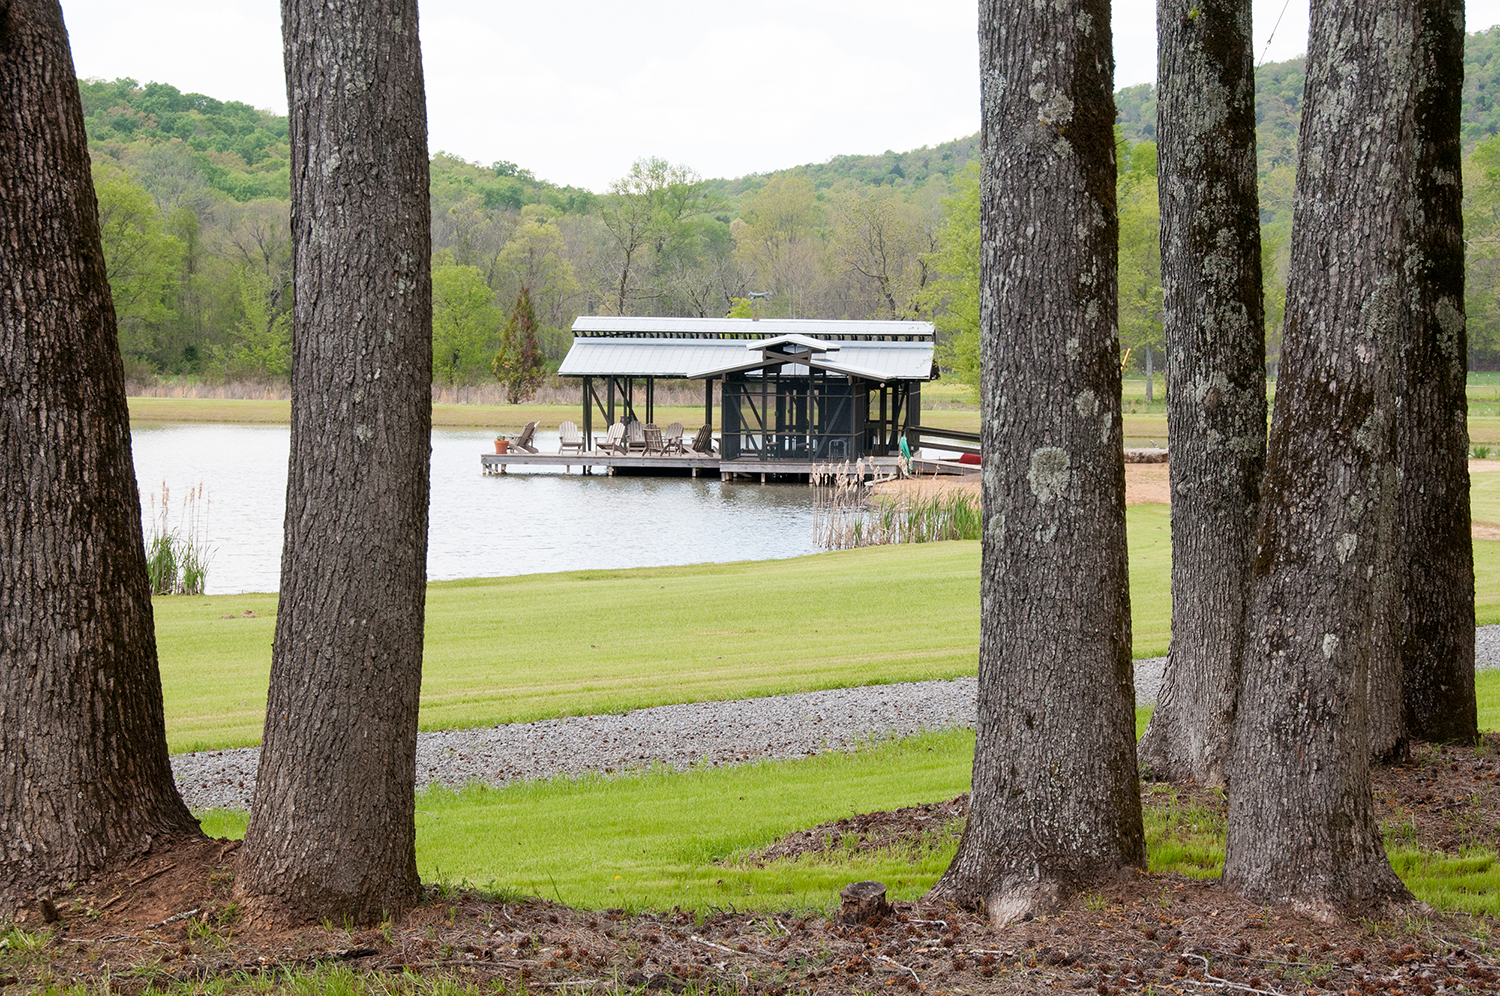 sugar_creek_farm_boathouse_08_pond_lake_boat_house_dock_screened_porch_1500.jpg